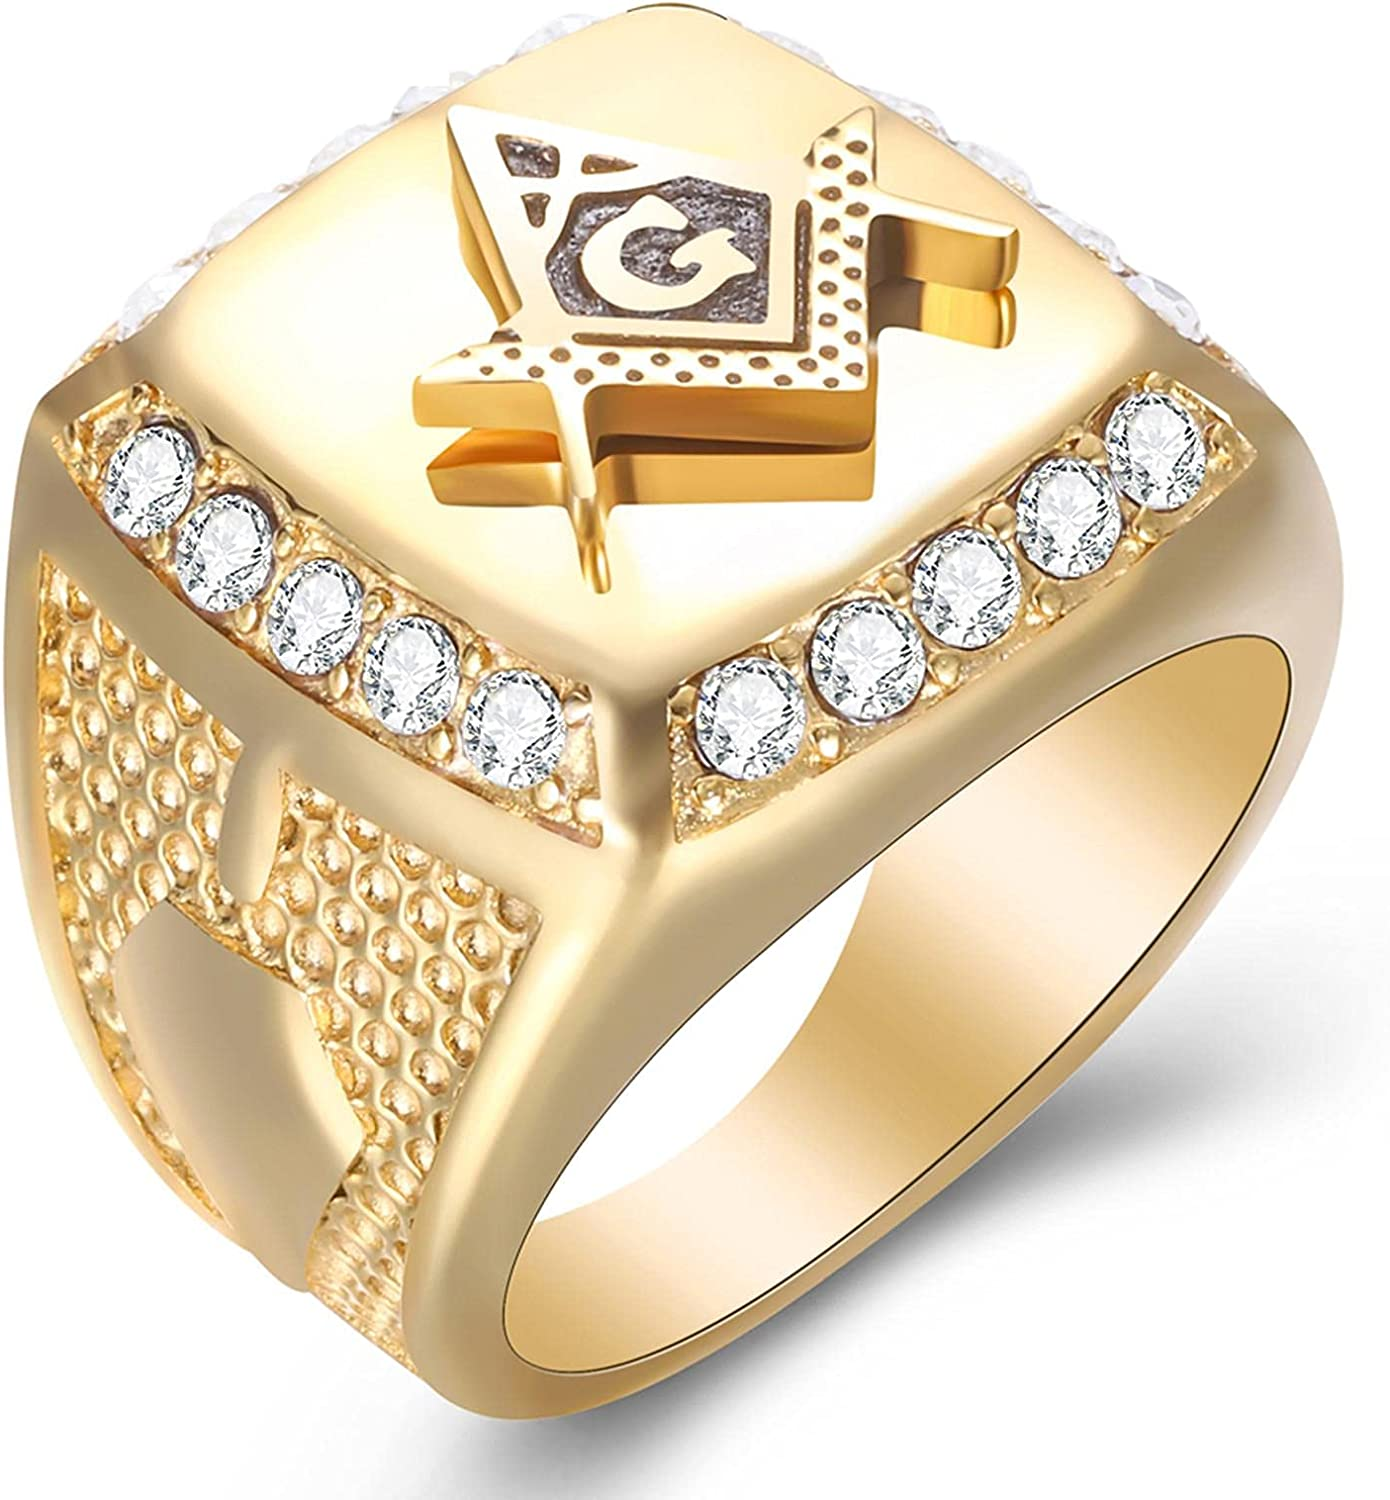 Crystal Men Max 67% OFF Rings With Freemason 316L Stainless Signet Mason Ste Max 64% OFF